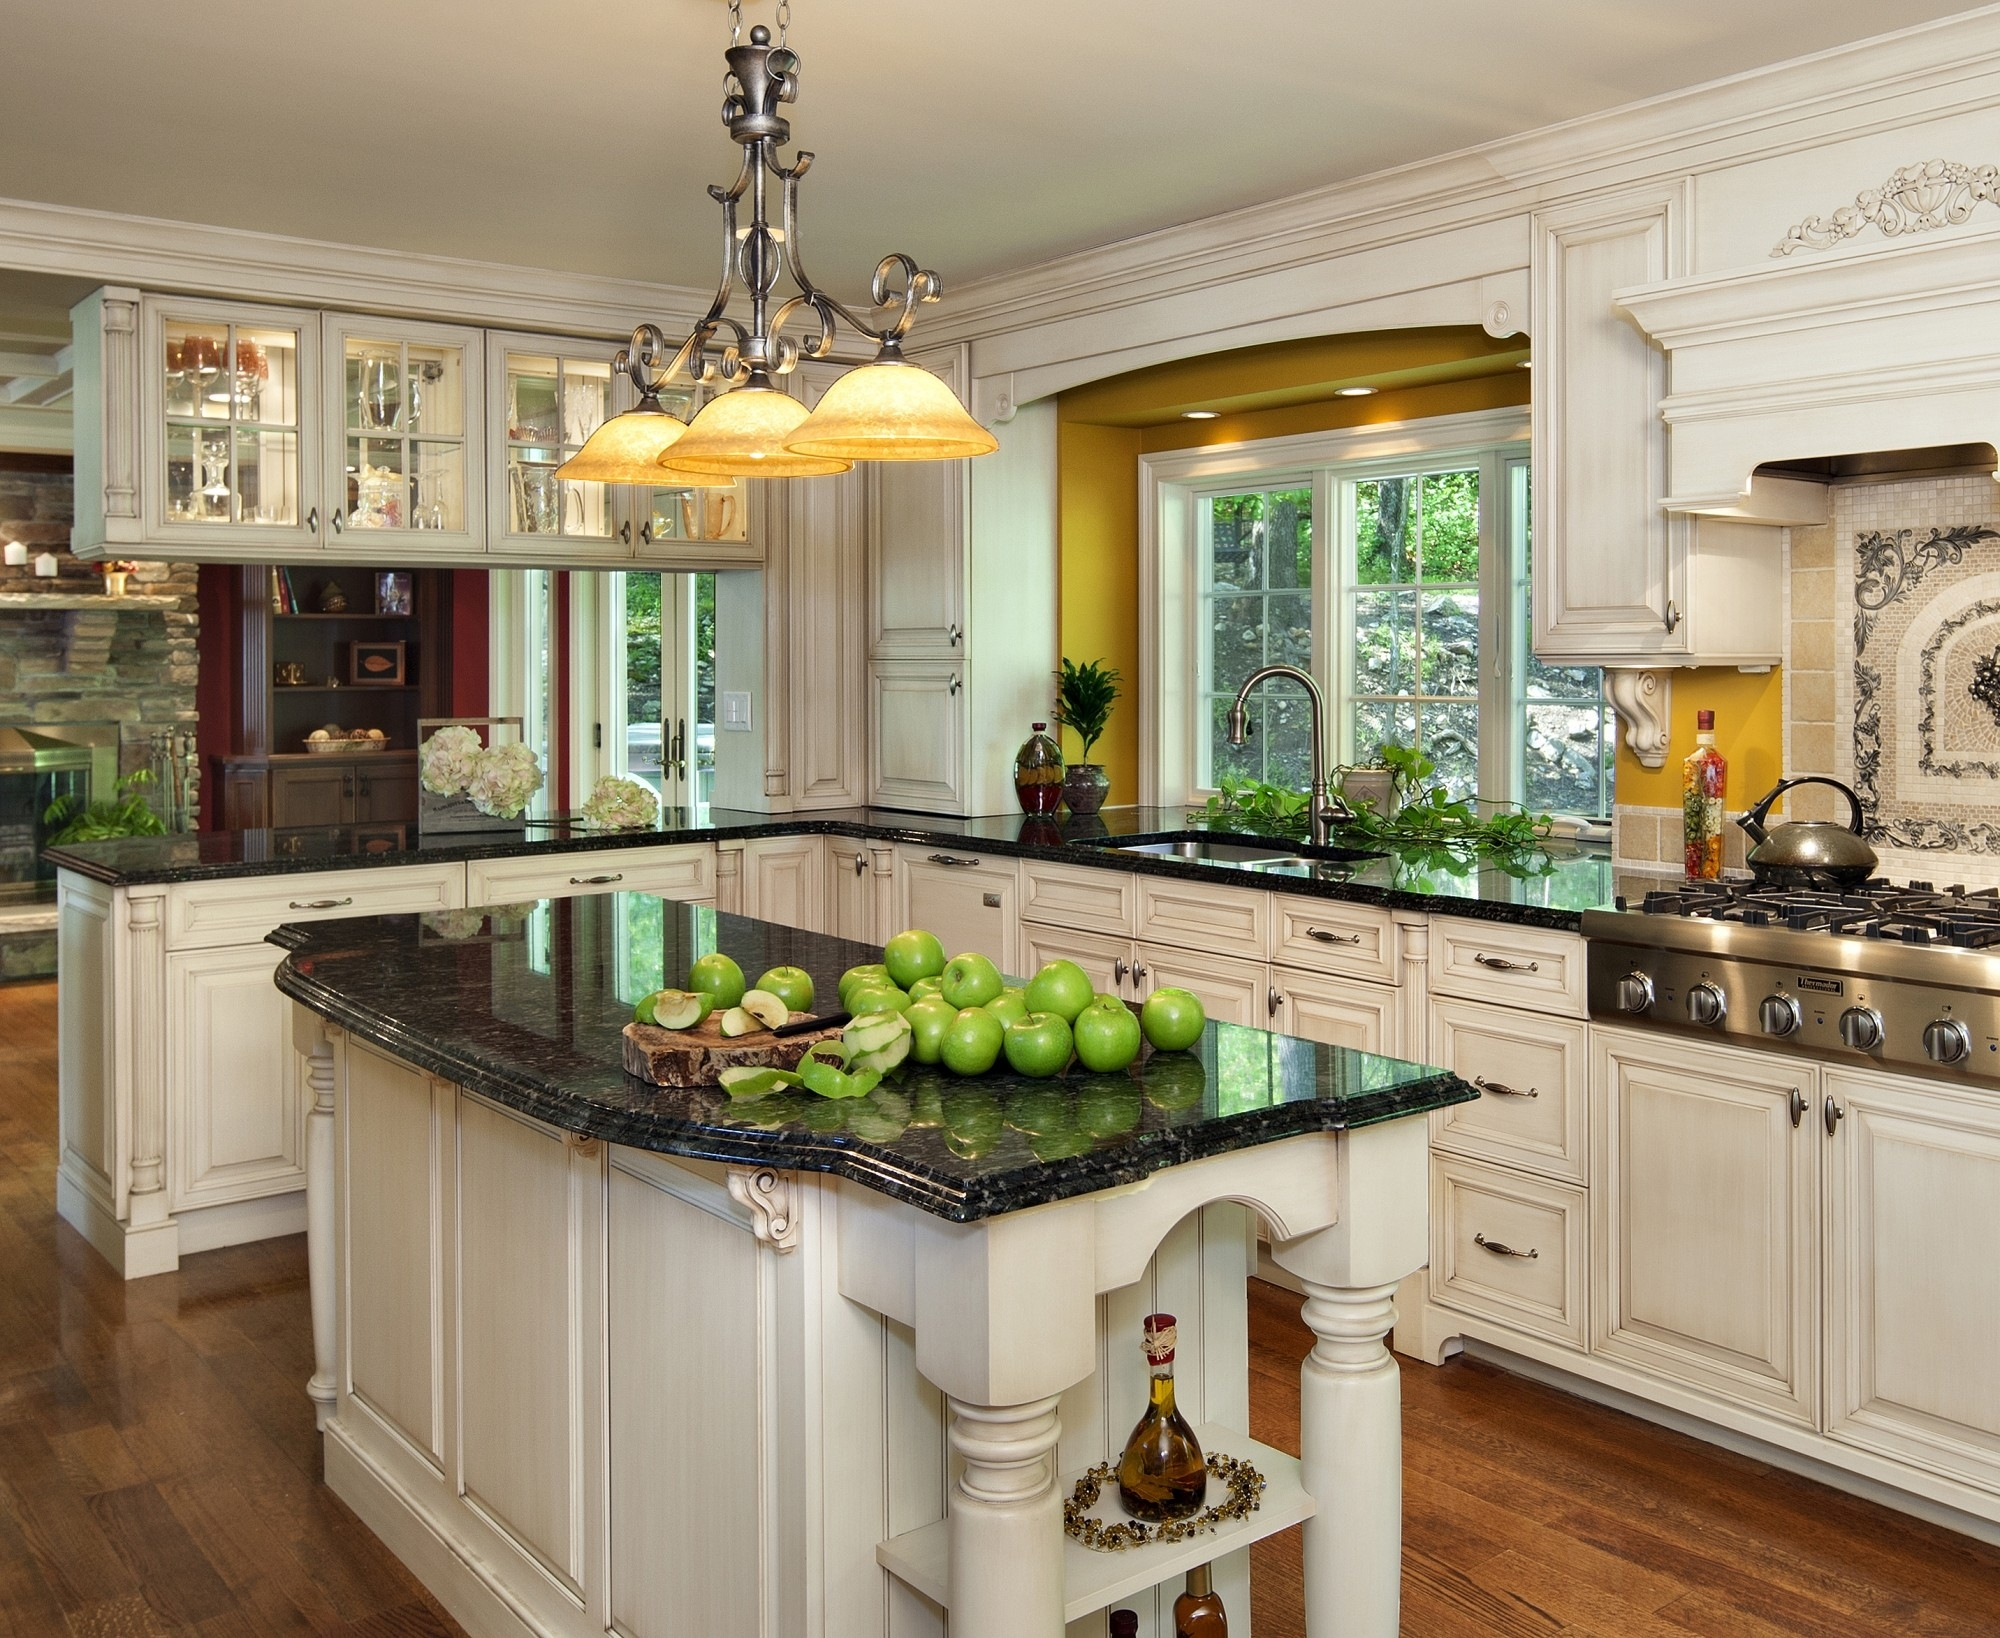 Decorating A Kitchen With Green Countertops